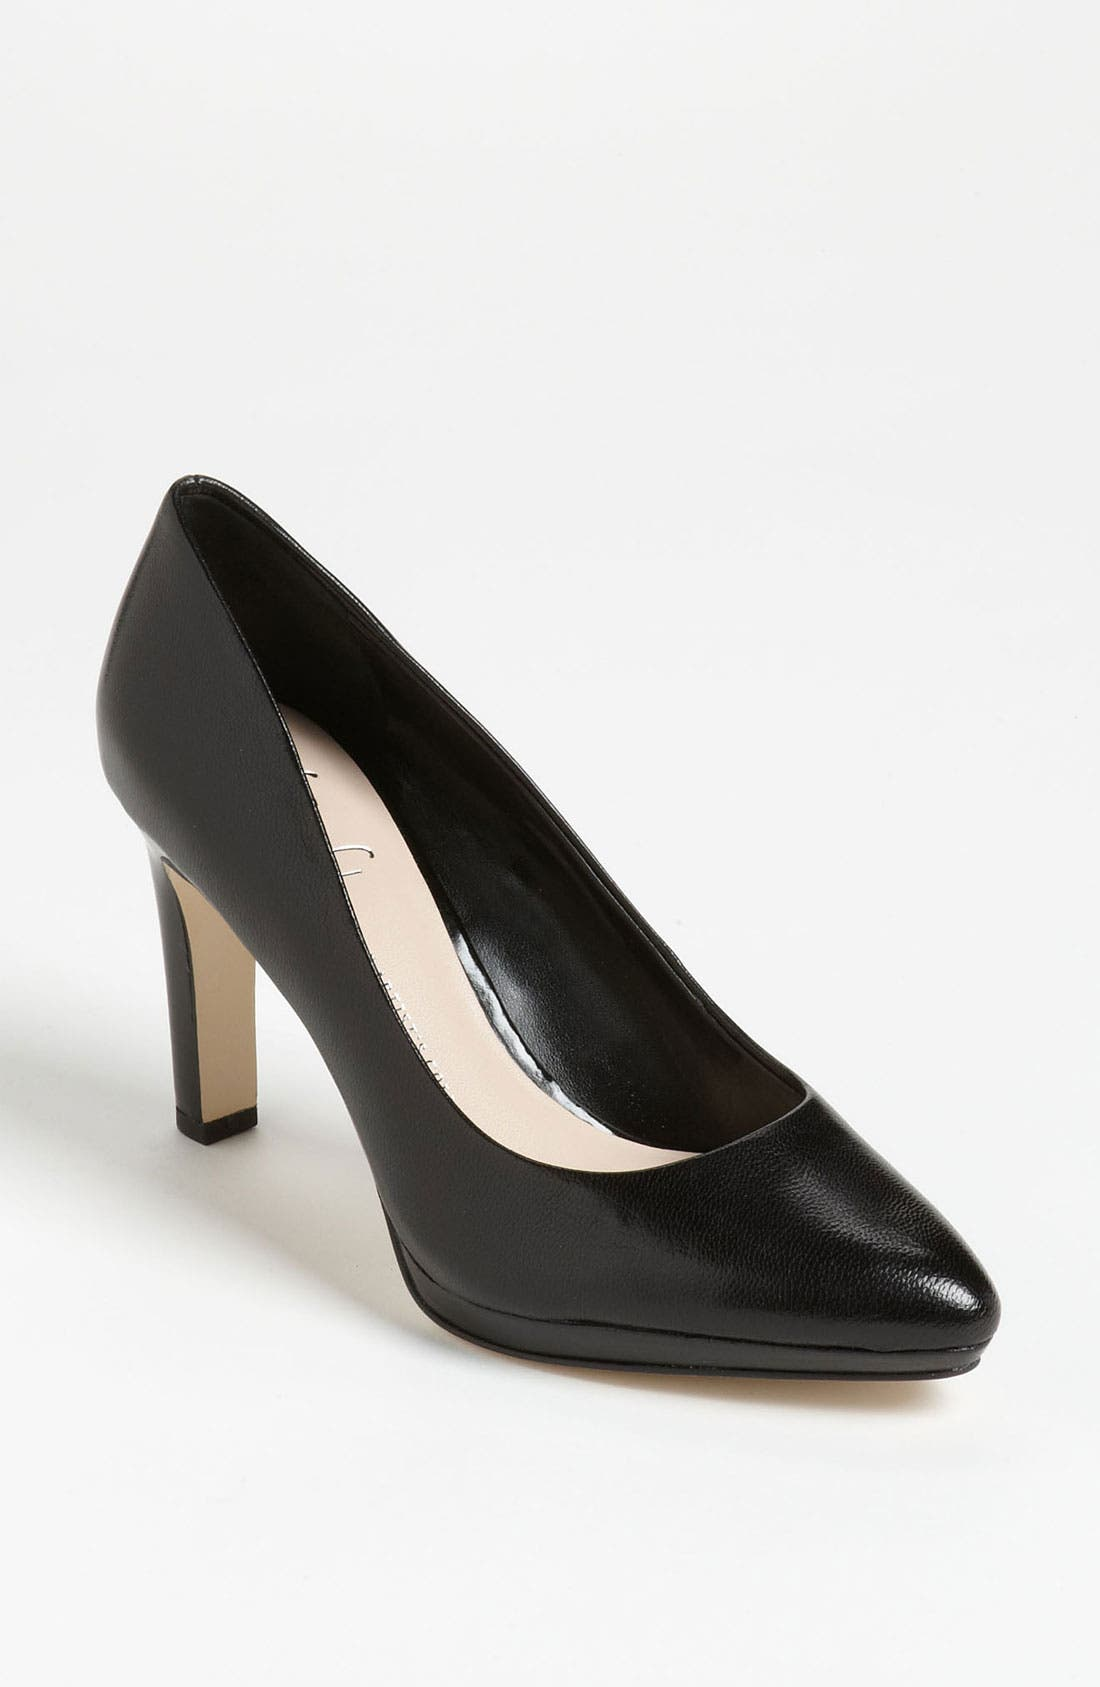 Alternate Image 1 Selected - Franco Sarto 'Landry' Pump